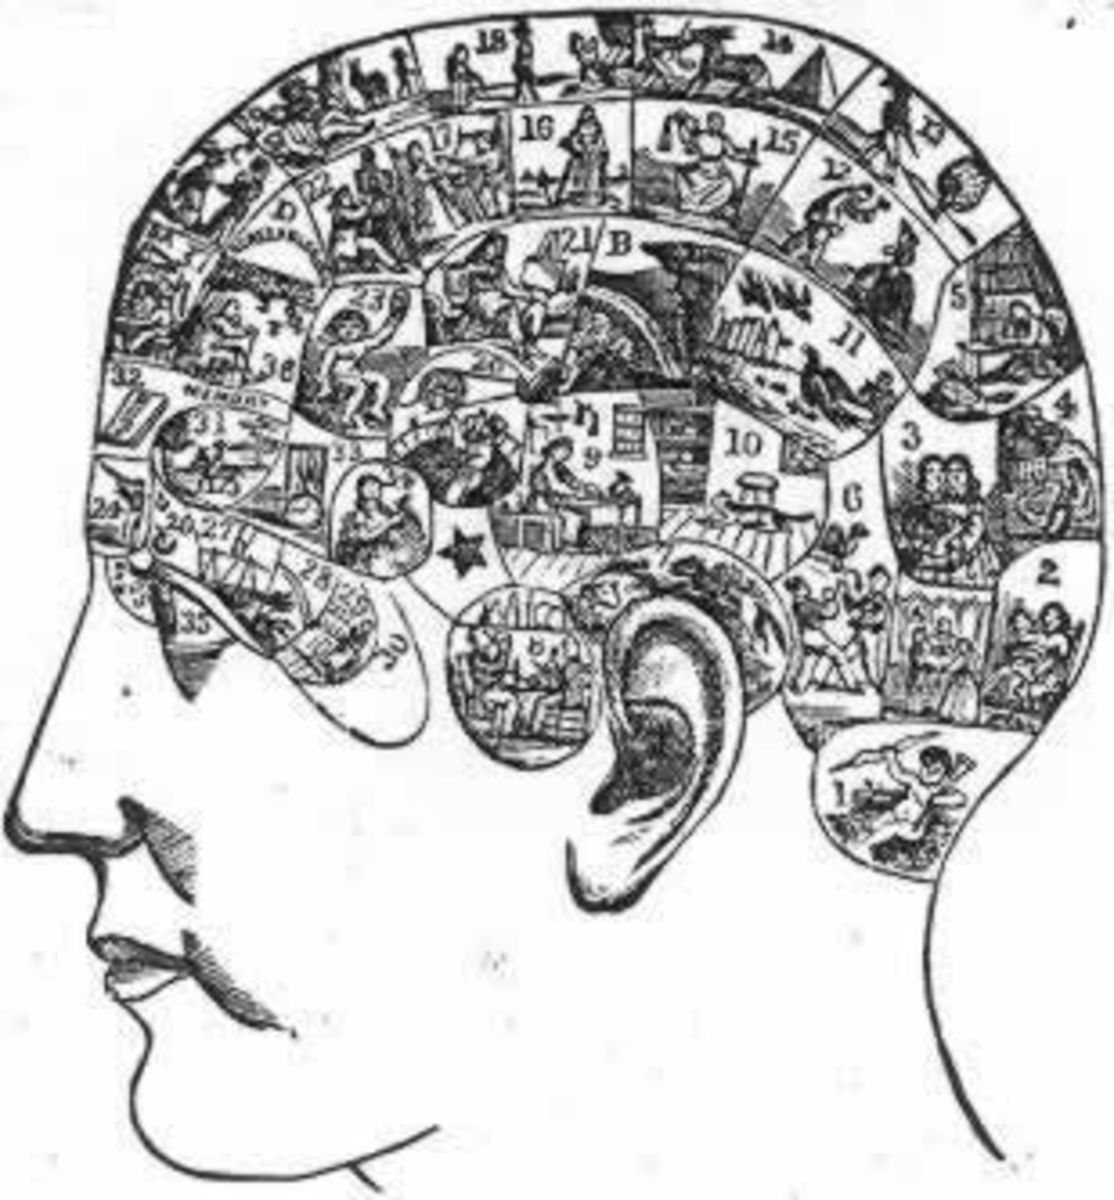 Phrenology map of the human head, used by George Burgess in his profession.